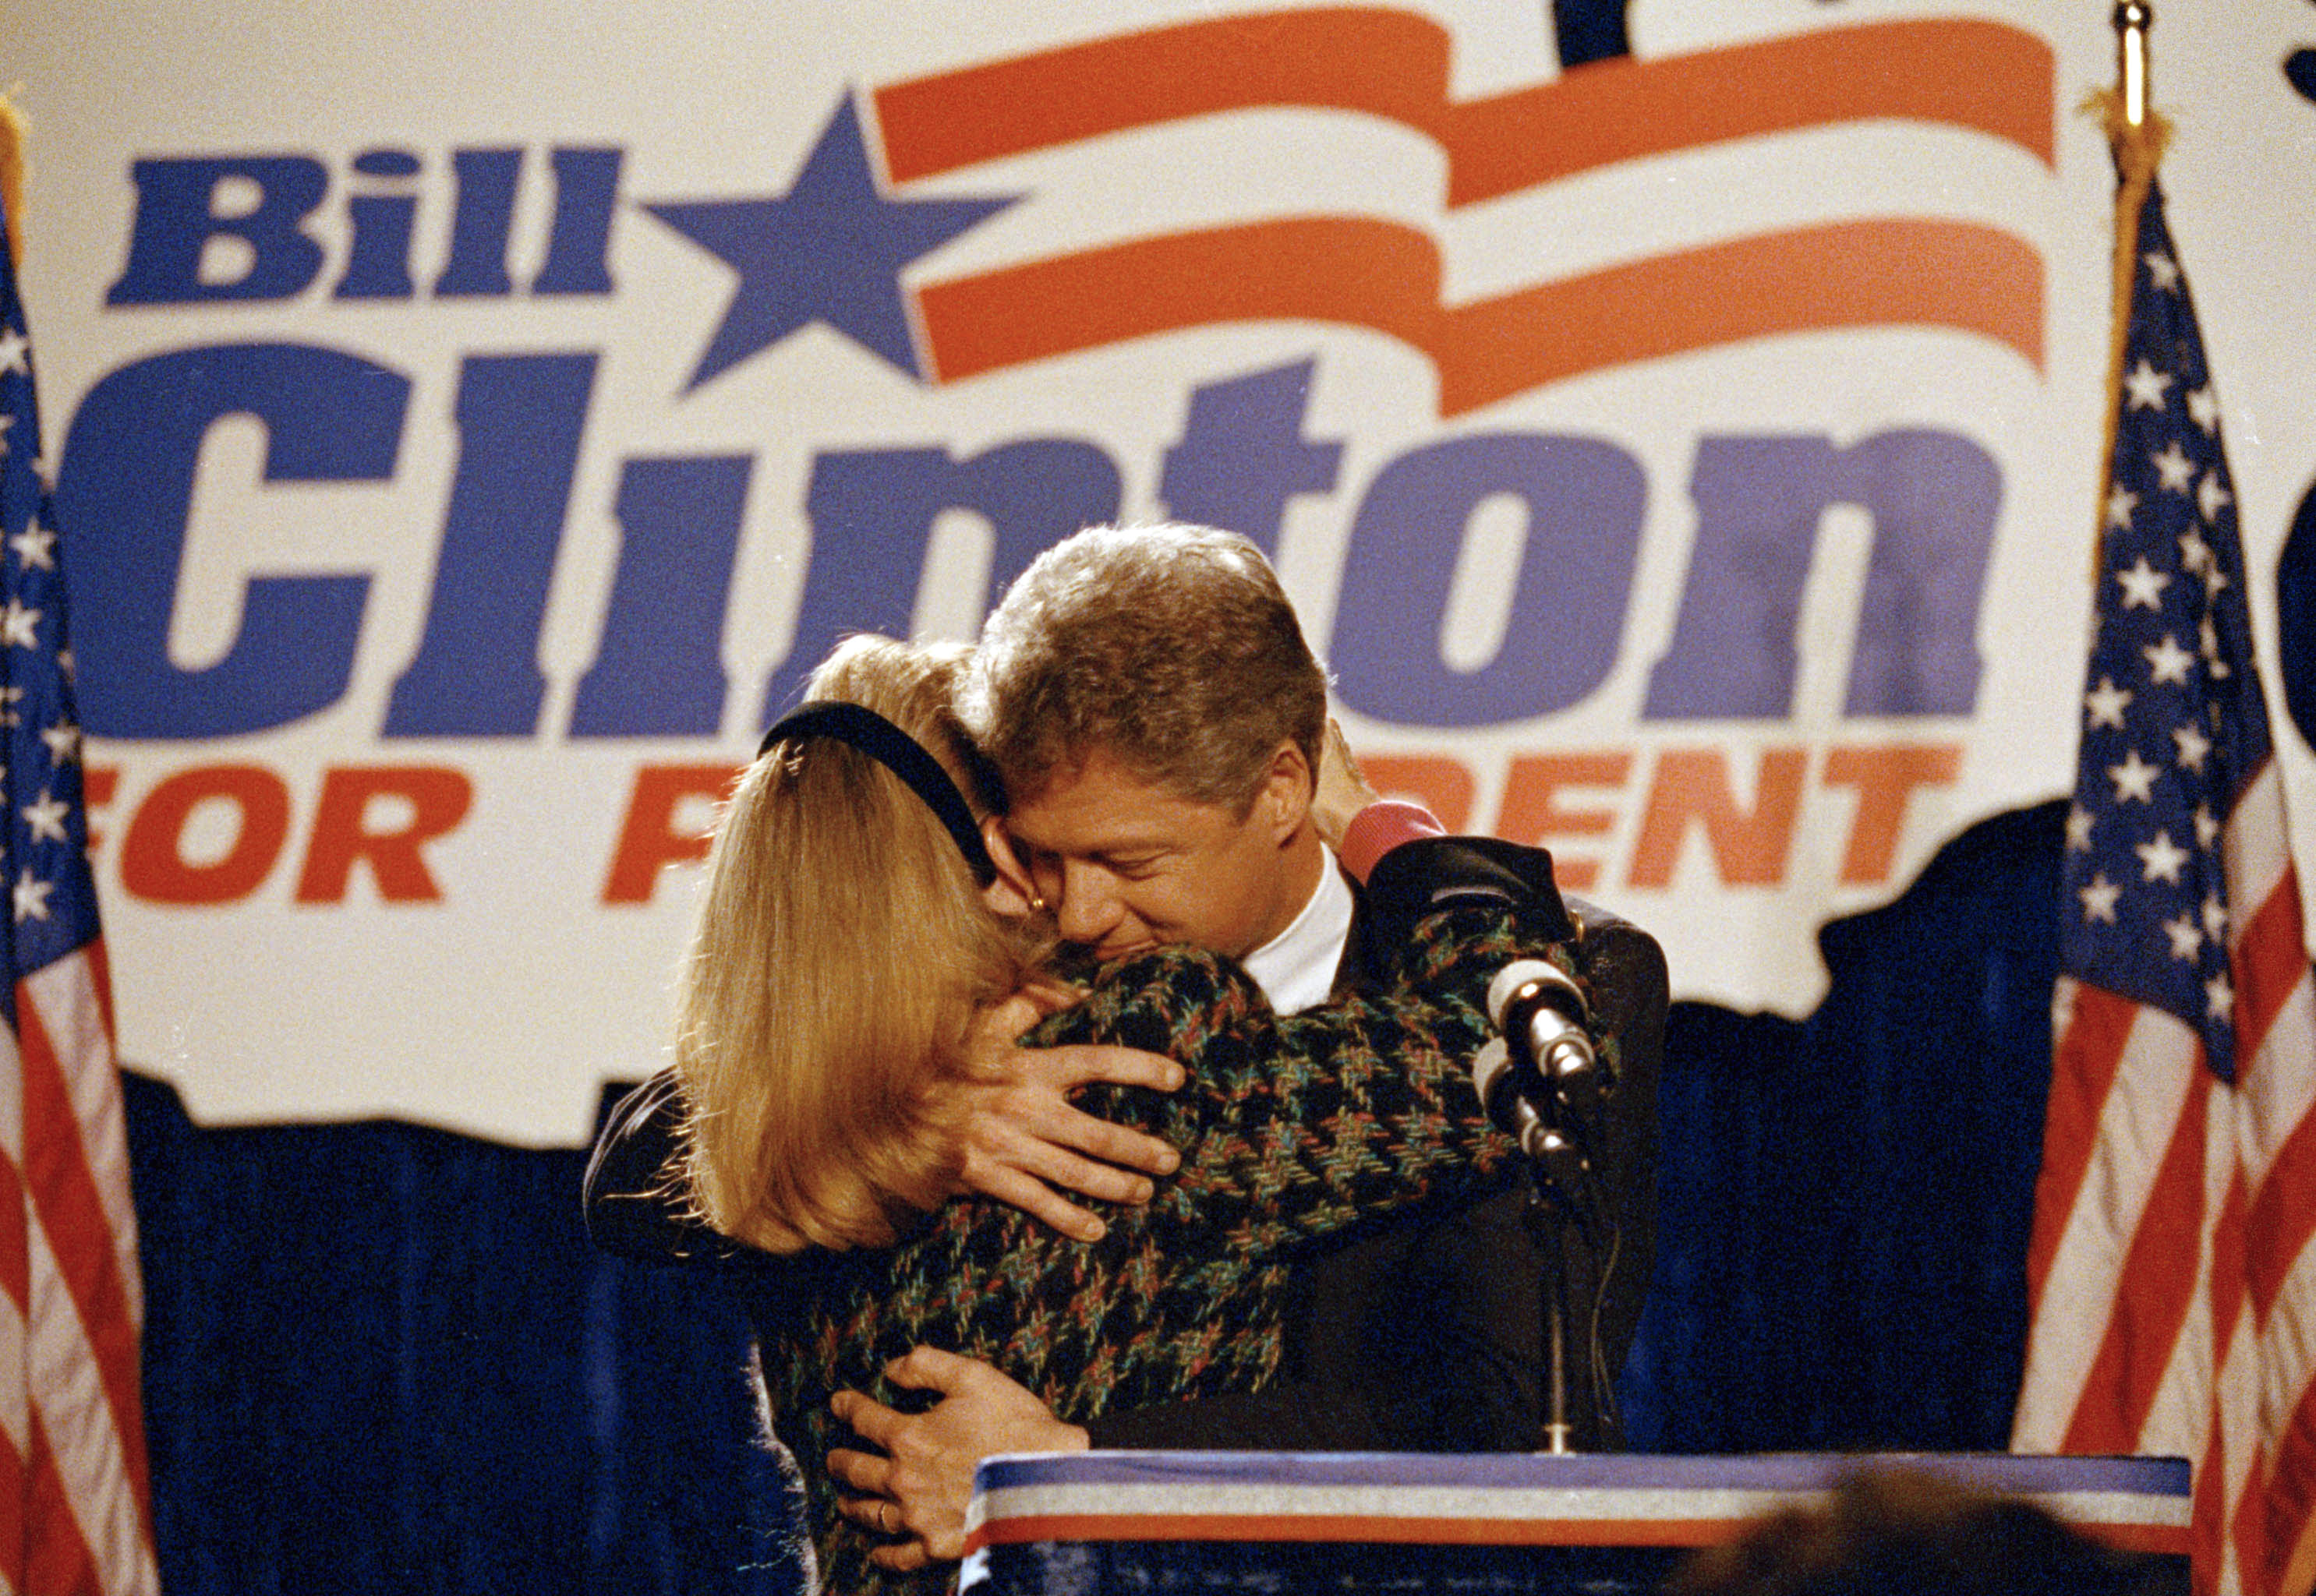 Democratic presidential candidate Bill Clinton hugs his wife Hillary Clinton after she introduced him to well wishers at a downtown Chicago hotel, March 10, 1992.